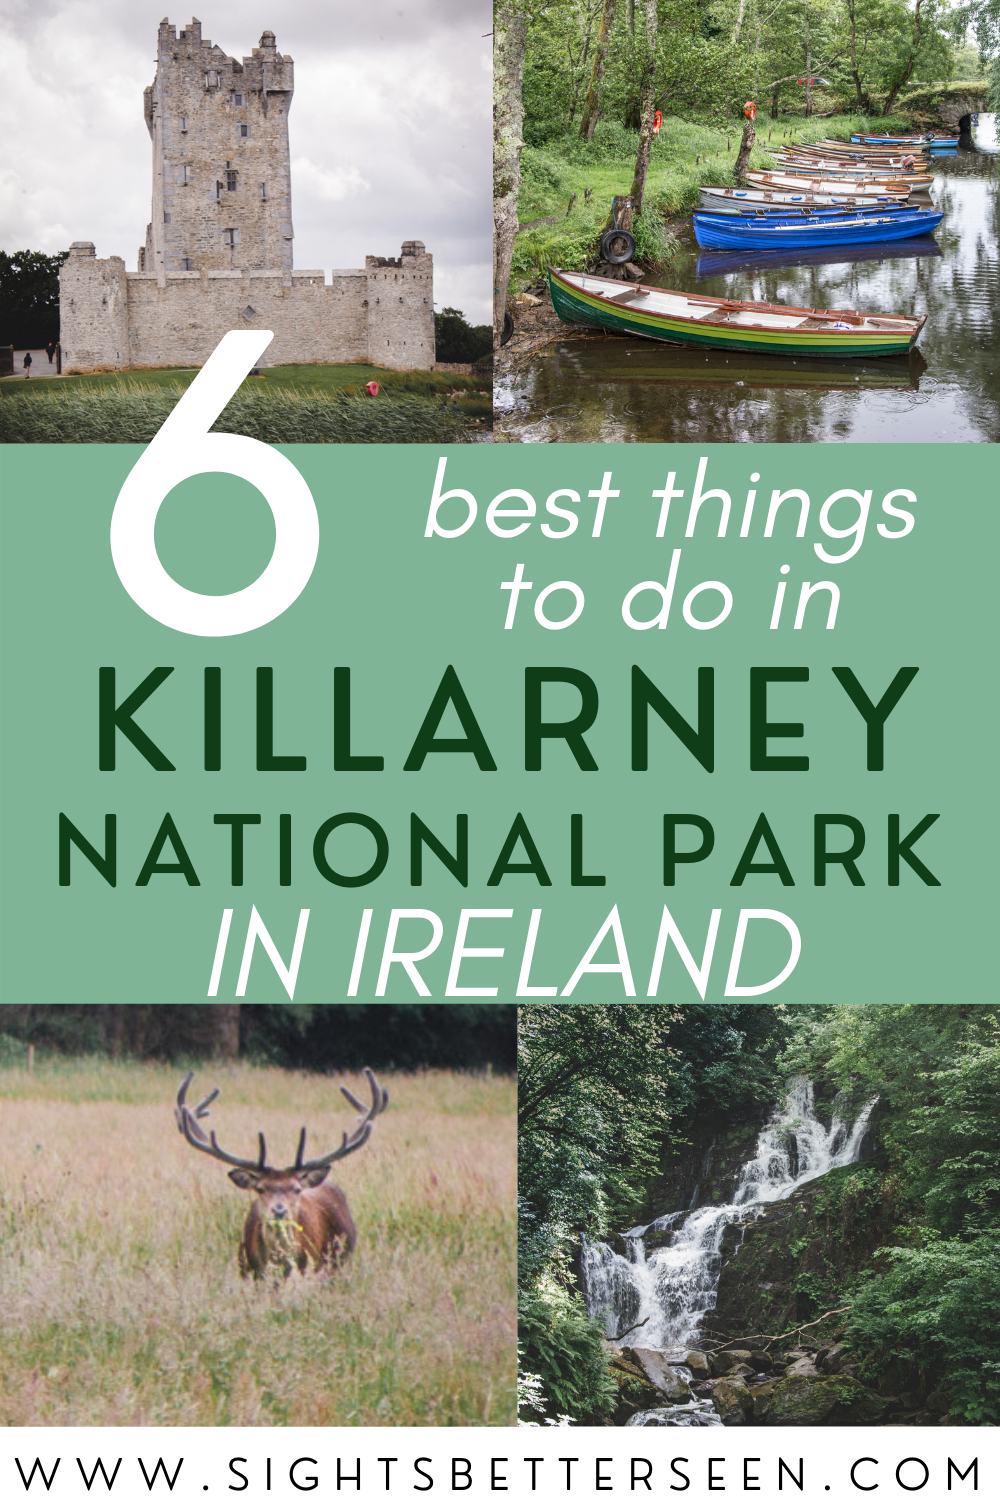 6 Best Things to Do in Killarney National Park in Ireland with photos of a deer, waterfall, Ross Castle, and boats!